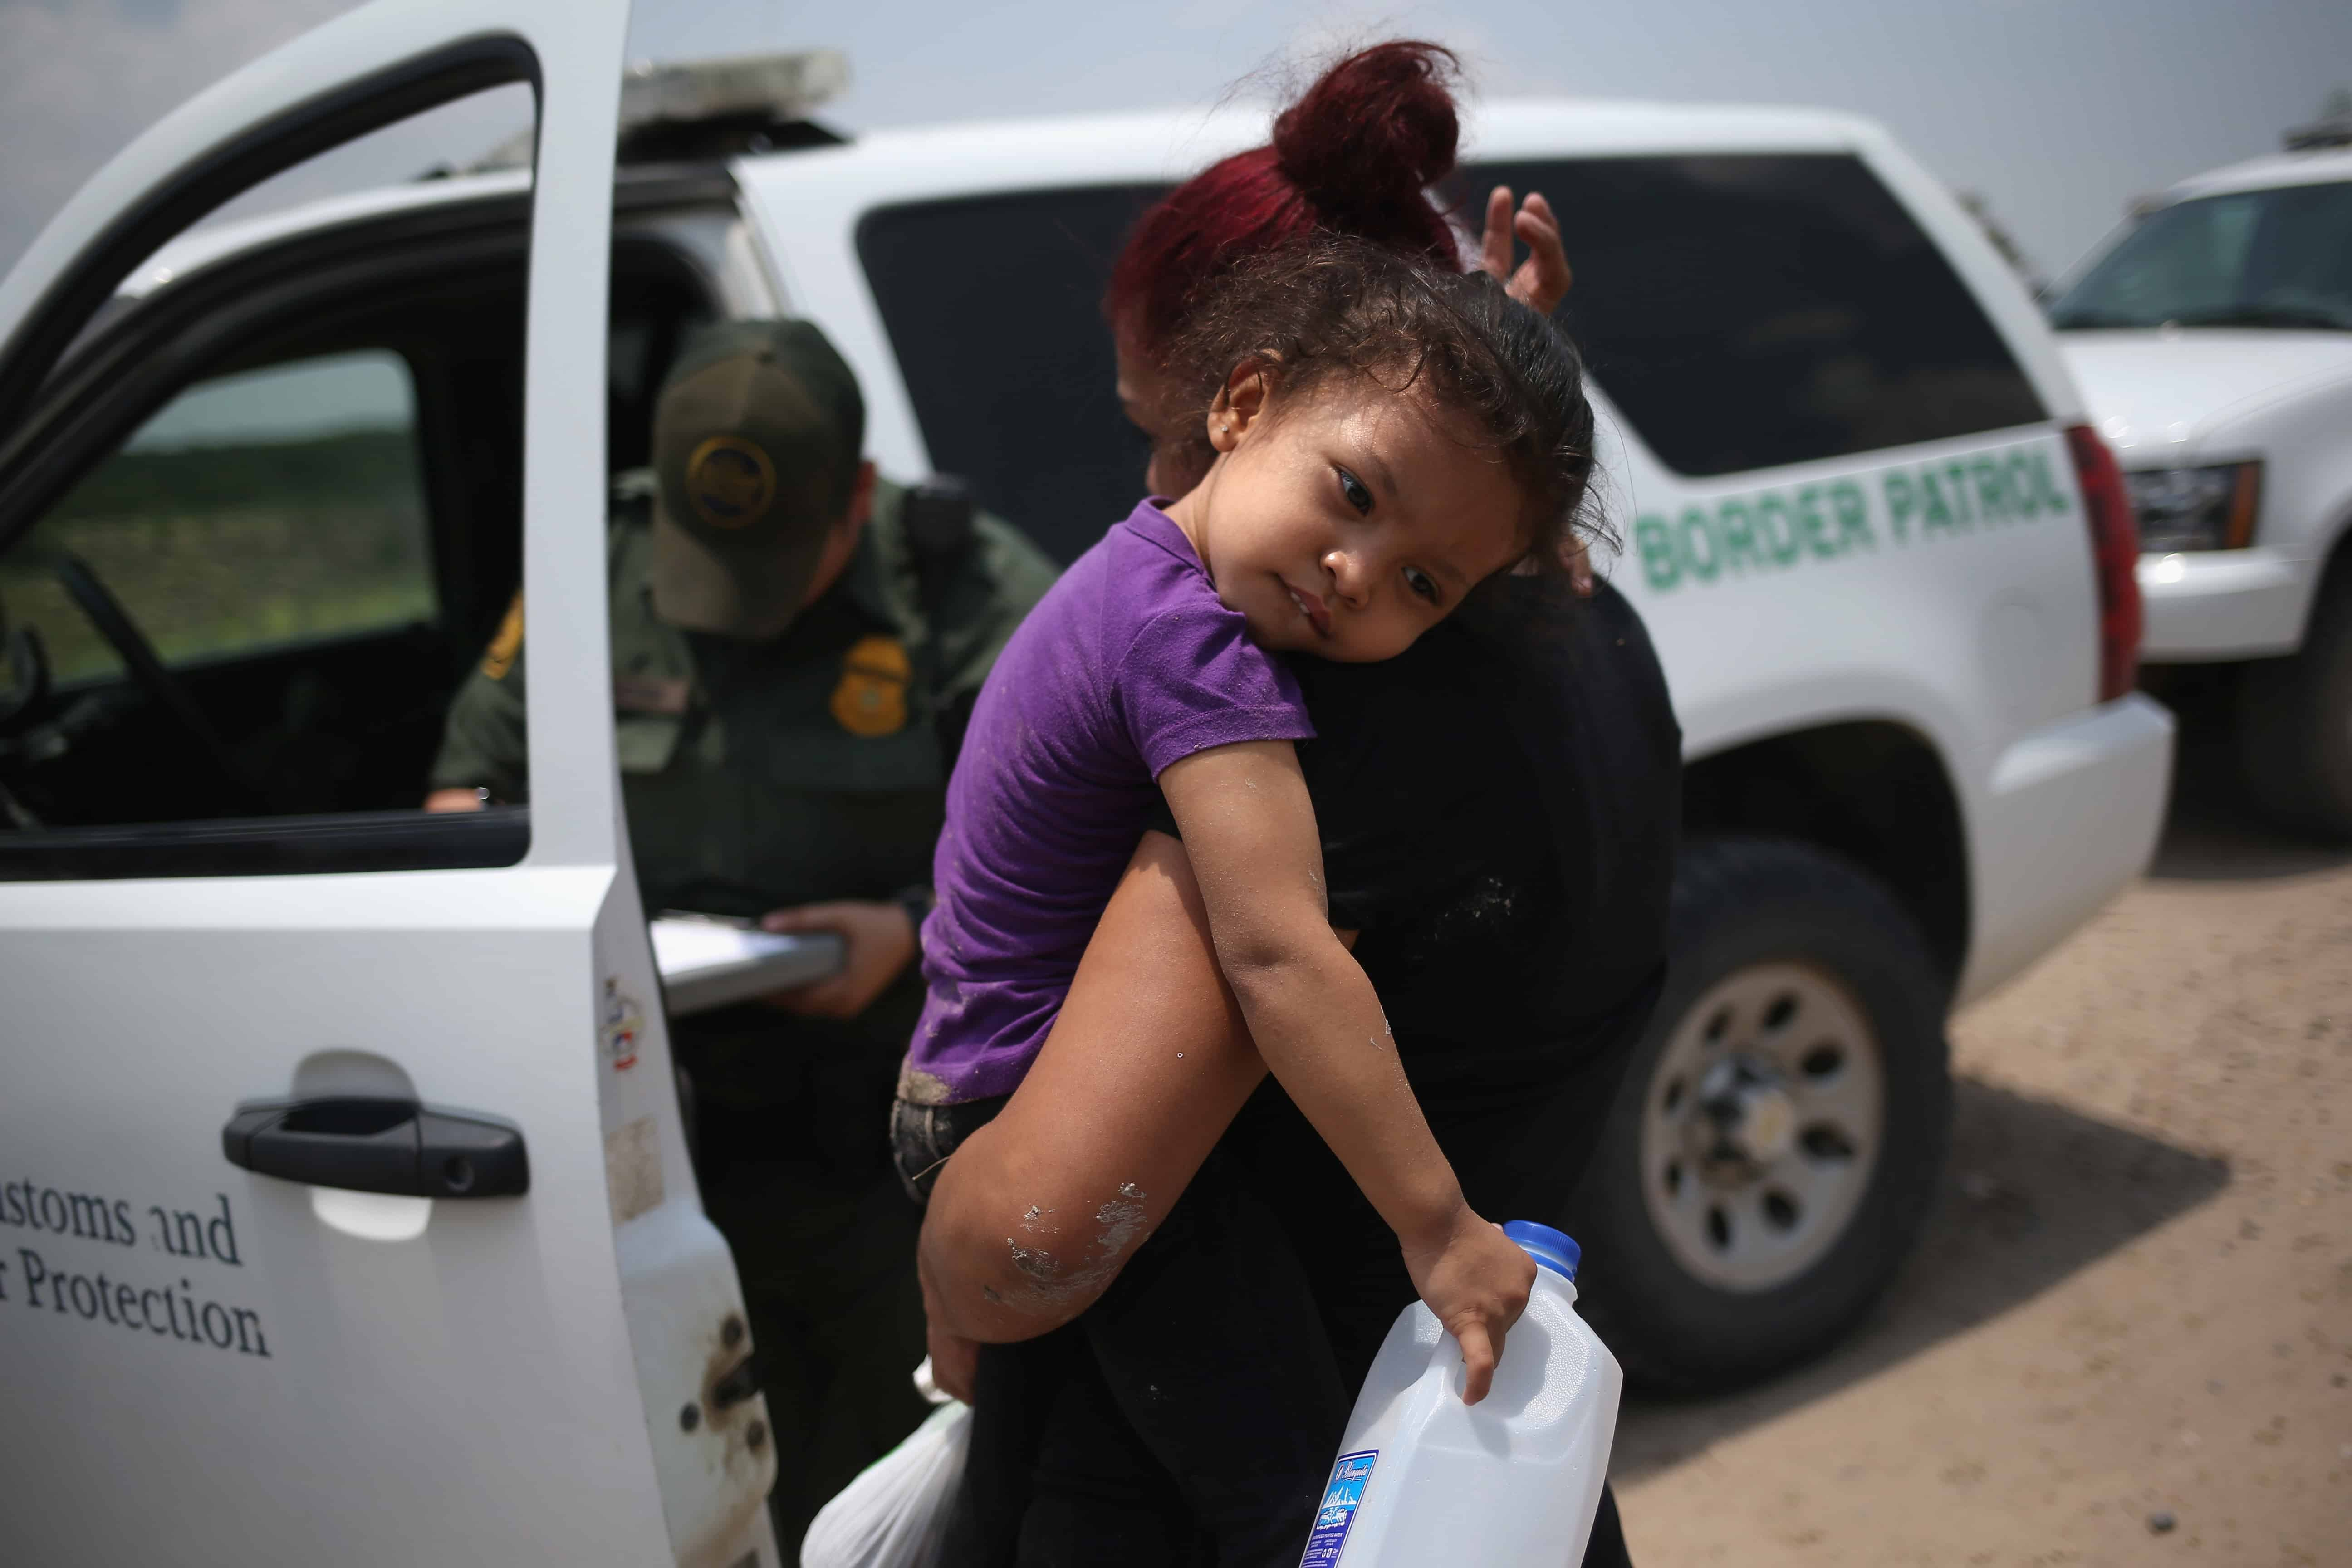 A mother and 3-year-old child from El Salvador.